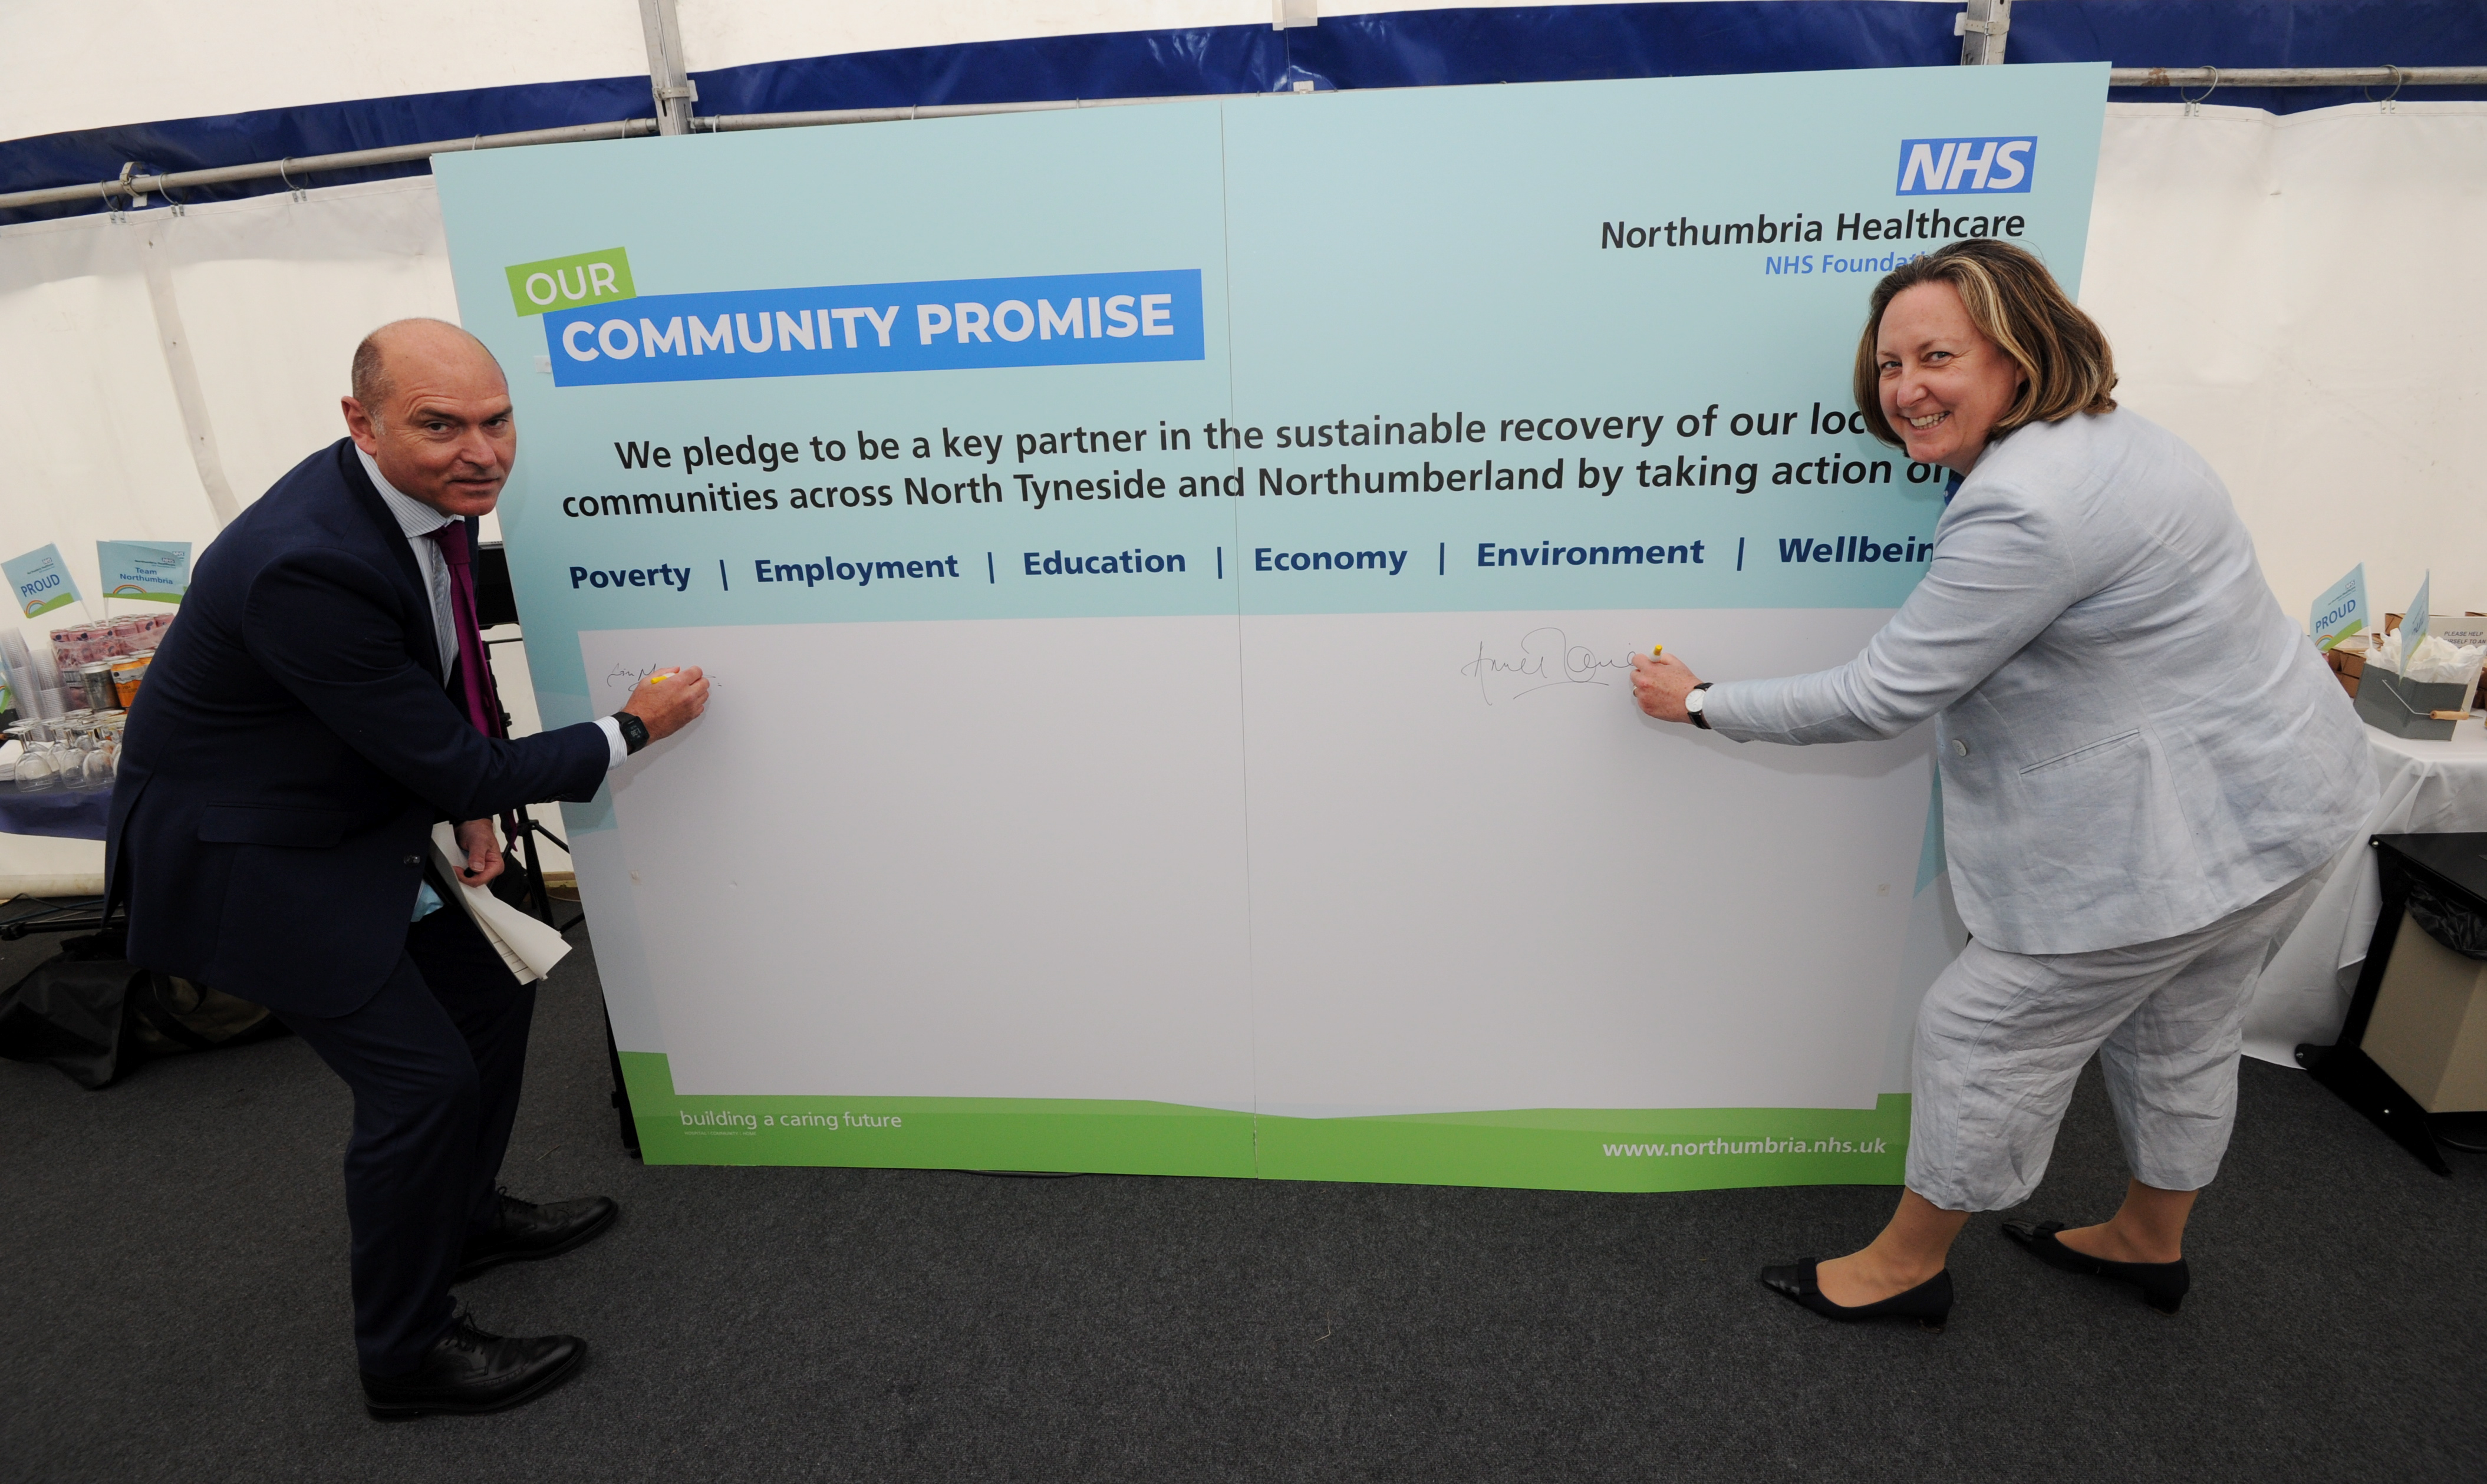 Northumbria Healthcare takes bold step with Community Promise